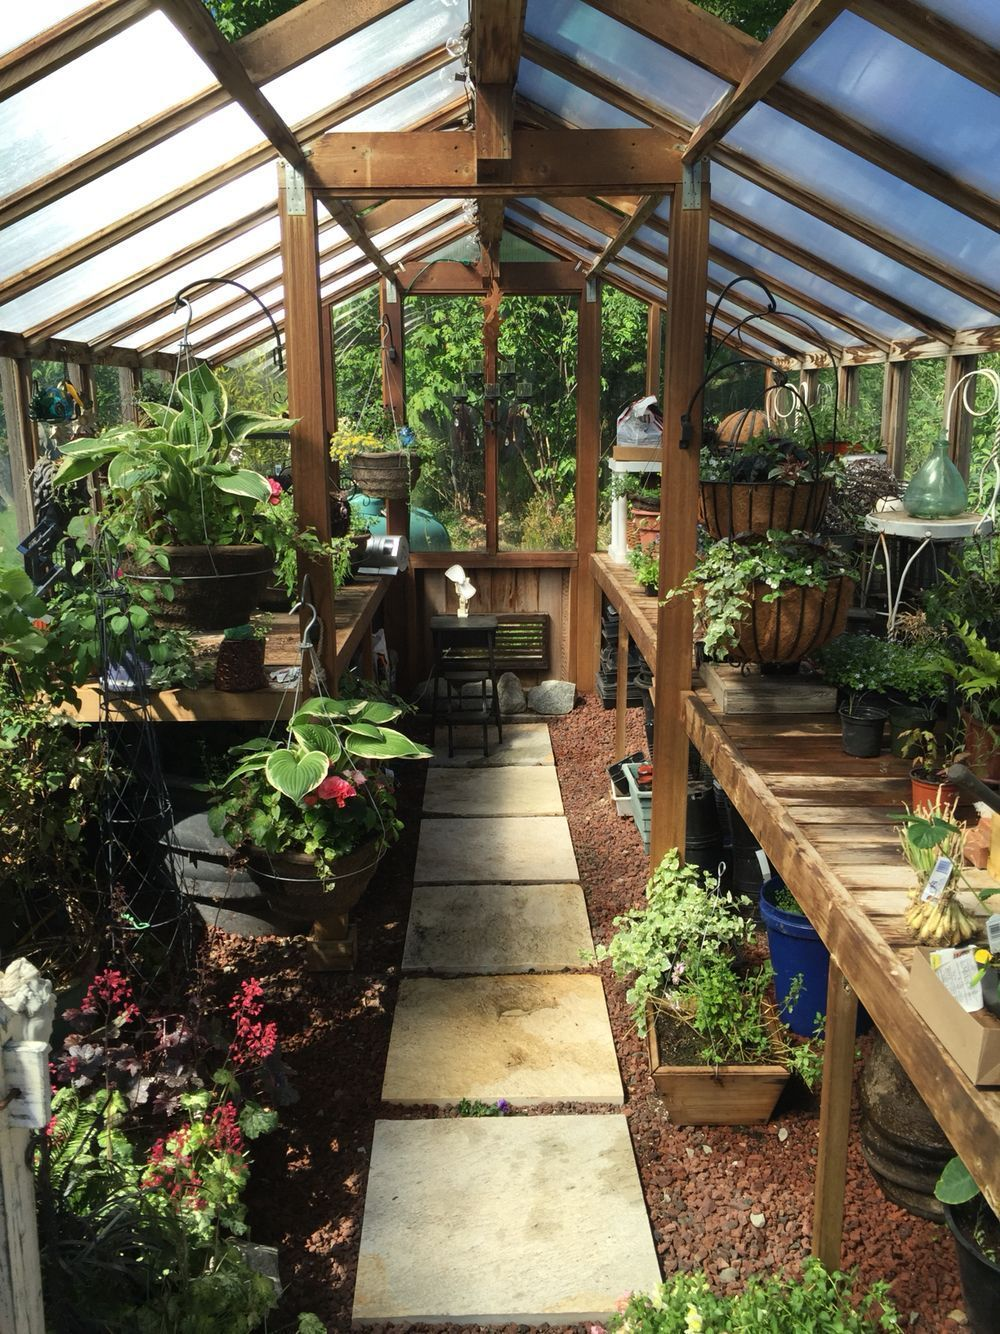 Greenhouses present a controlled temperature atmosphere